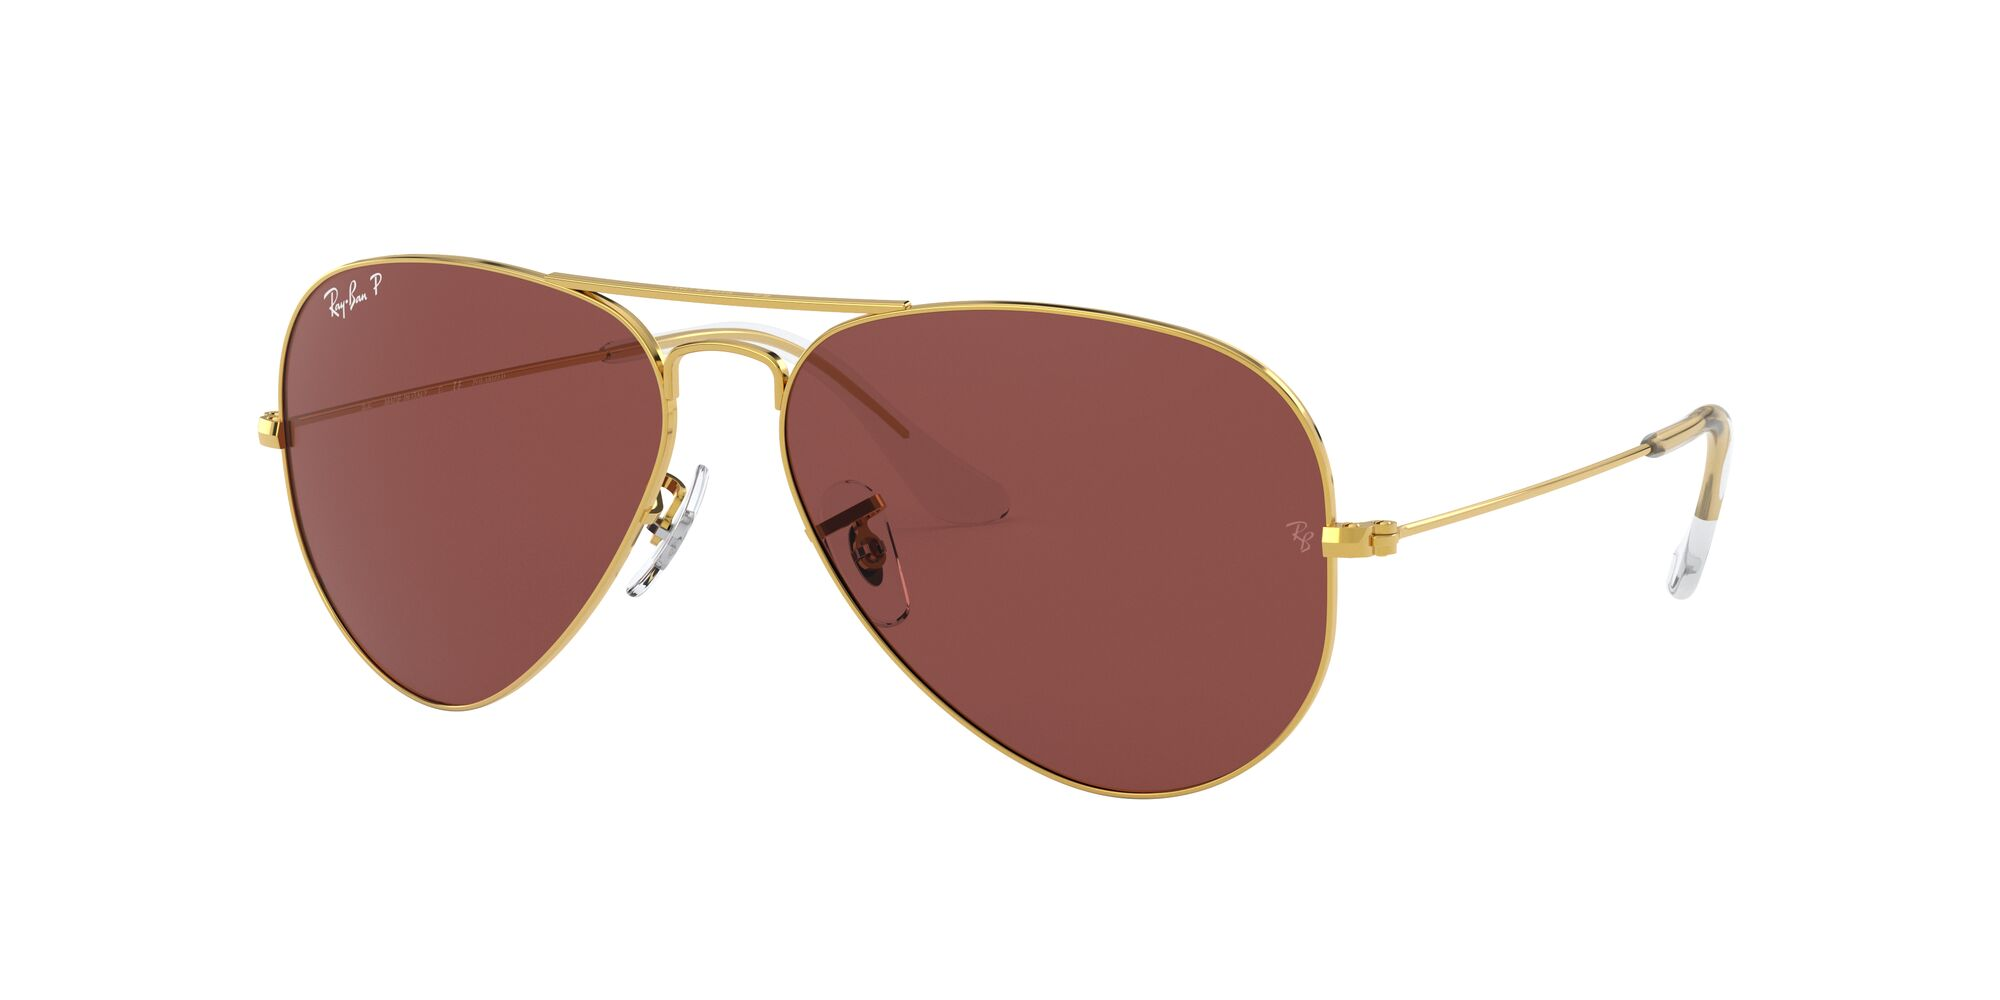 Angle_Left01 Ray-Ban Ray-Ban 0RB3025 9196AF 54/14 Goud/Paars